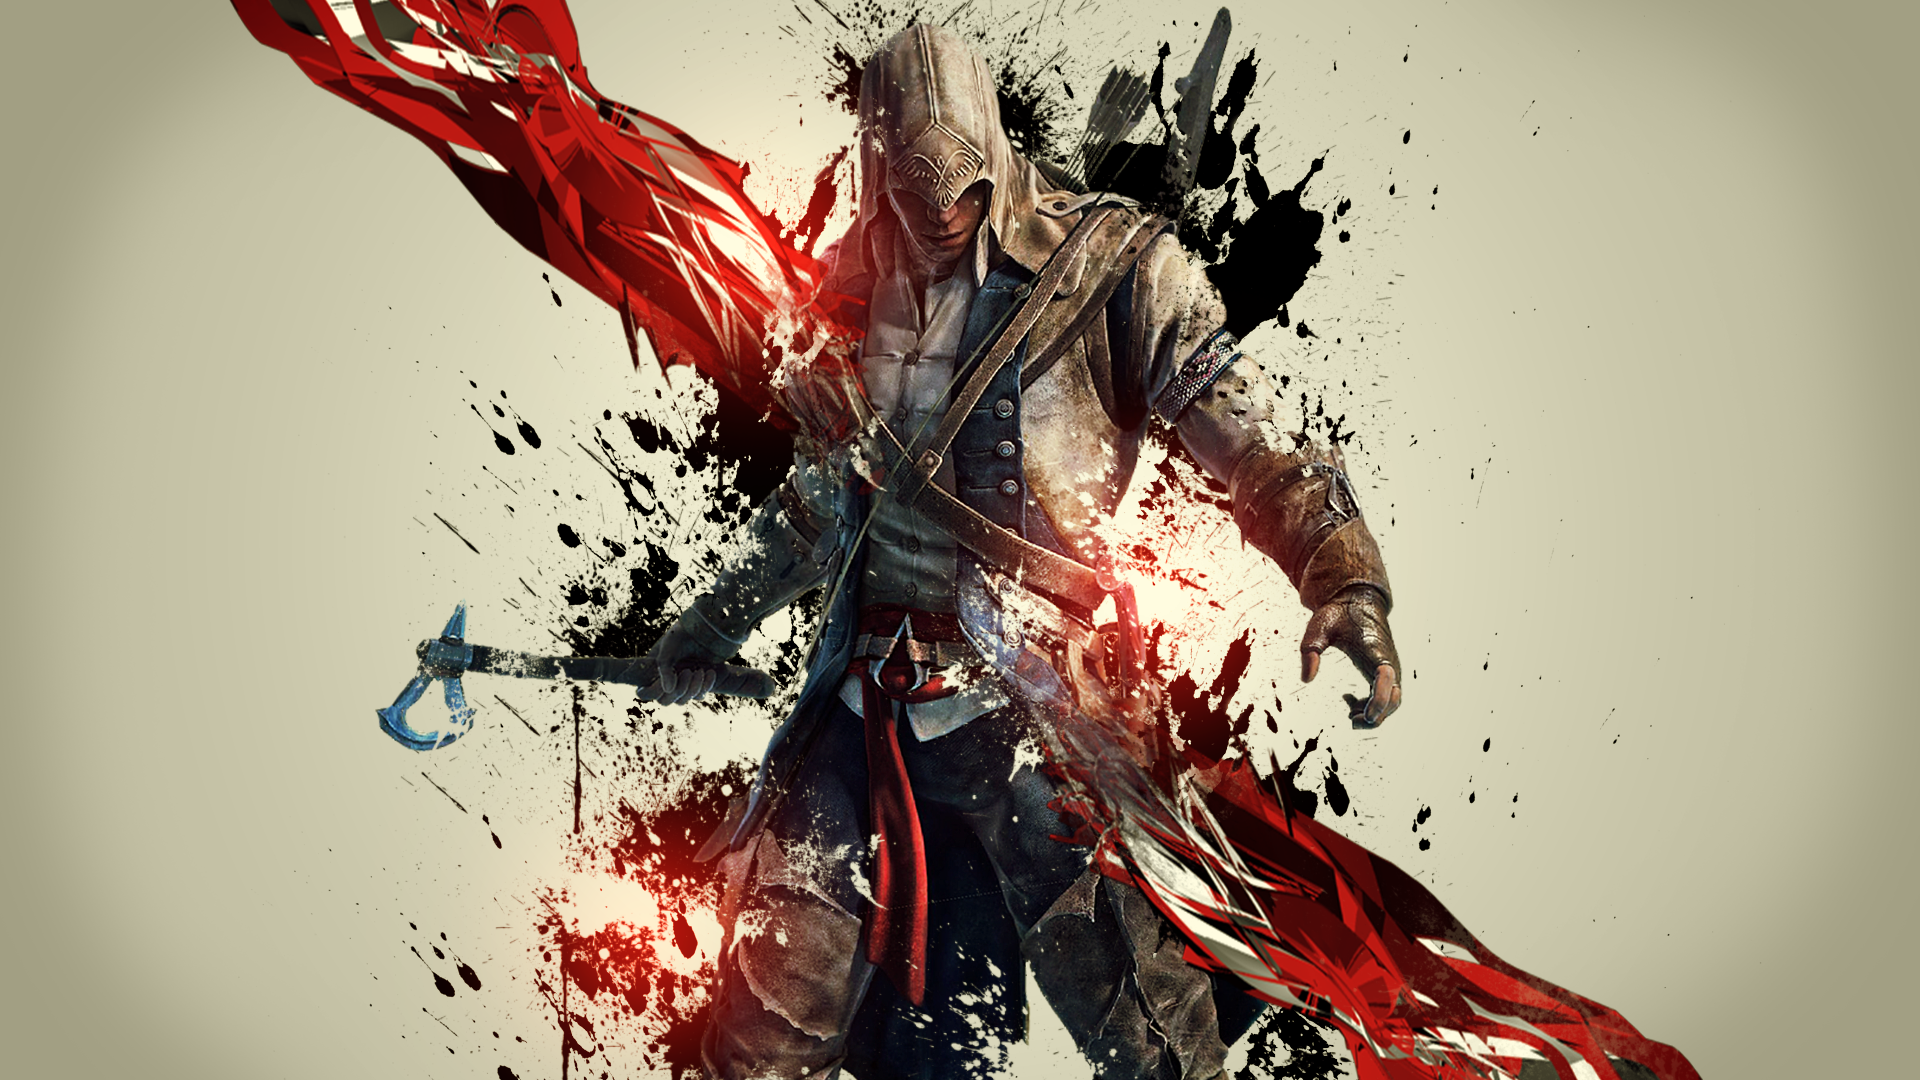 1066 Assassin's Creed HD Wallpapers | Backgrounds - Wallpaper Abyss